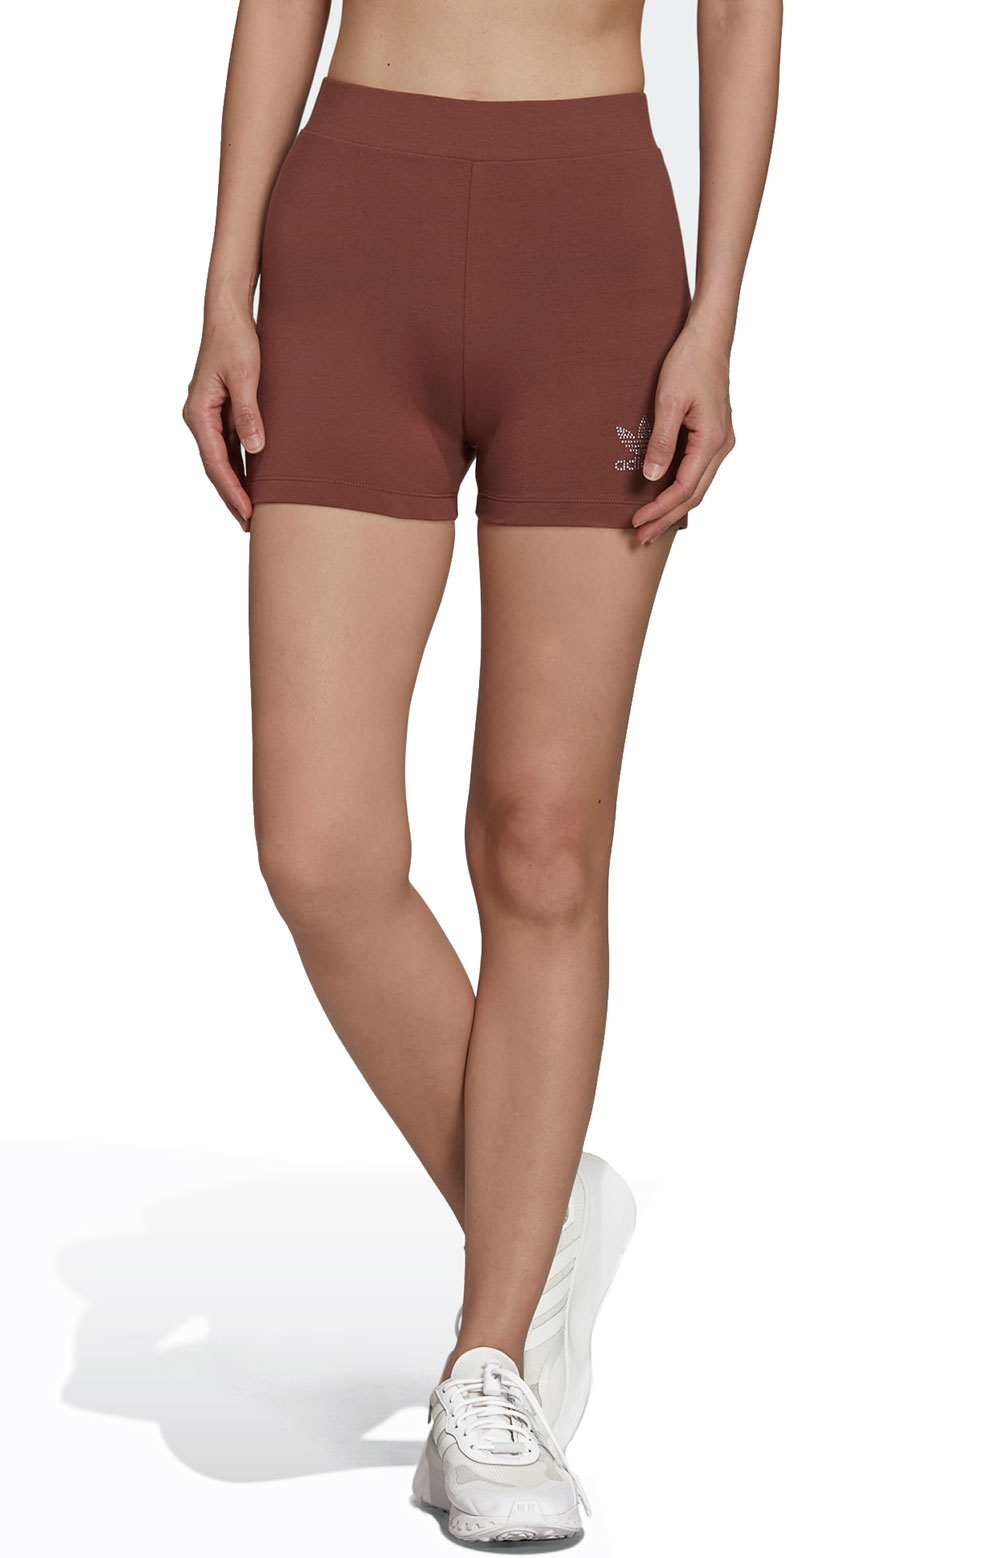 (HF9204) 2000 Luxe Shorts - Earth Brown  2